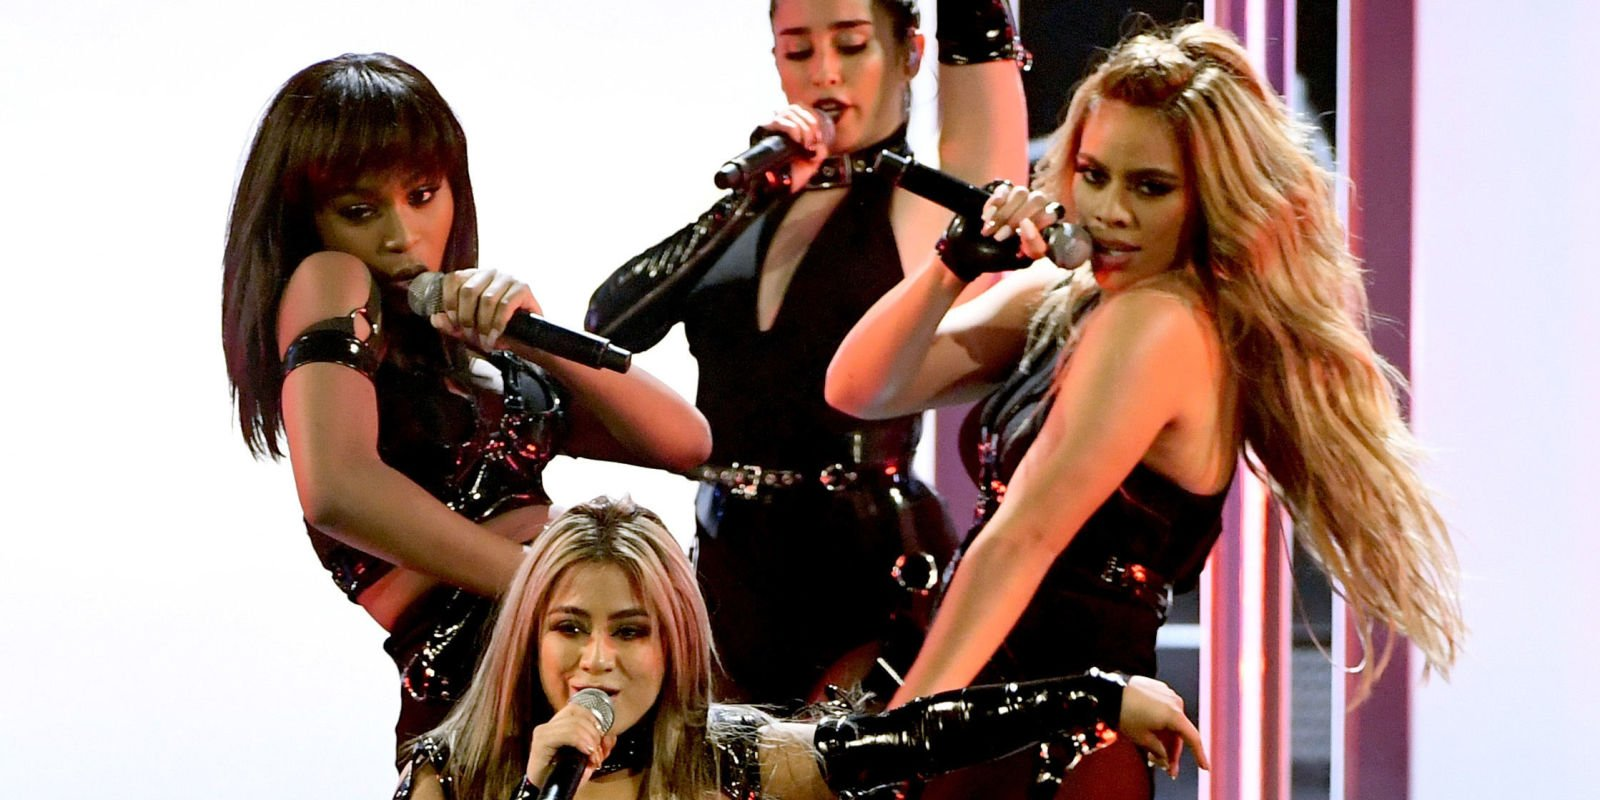 Fifth Harmony announce hiatus after 6 years together to pursue solo careers